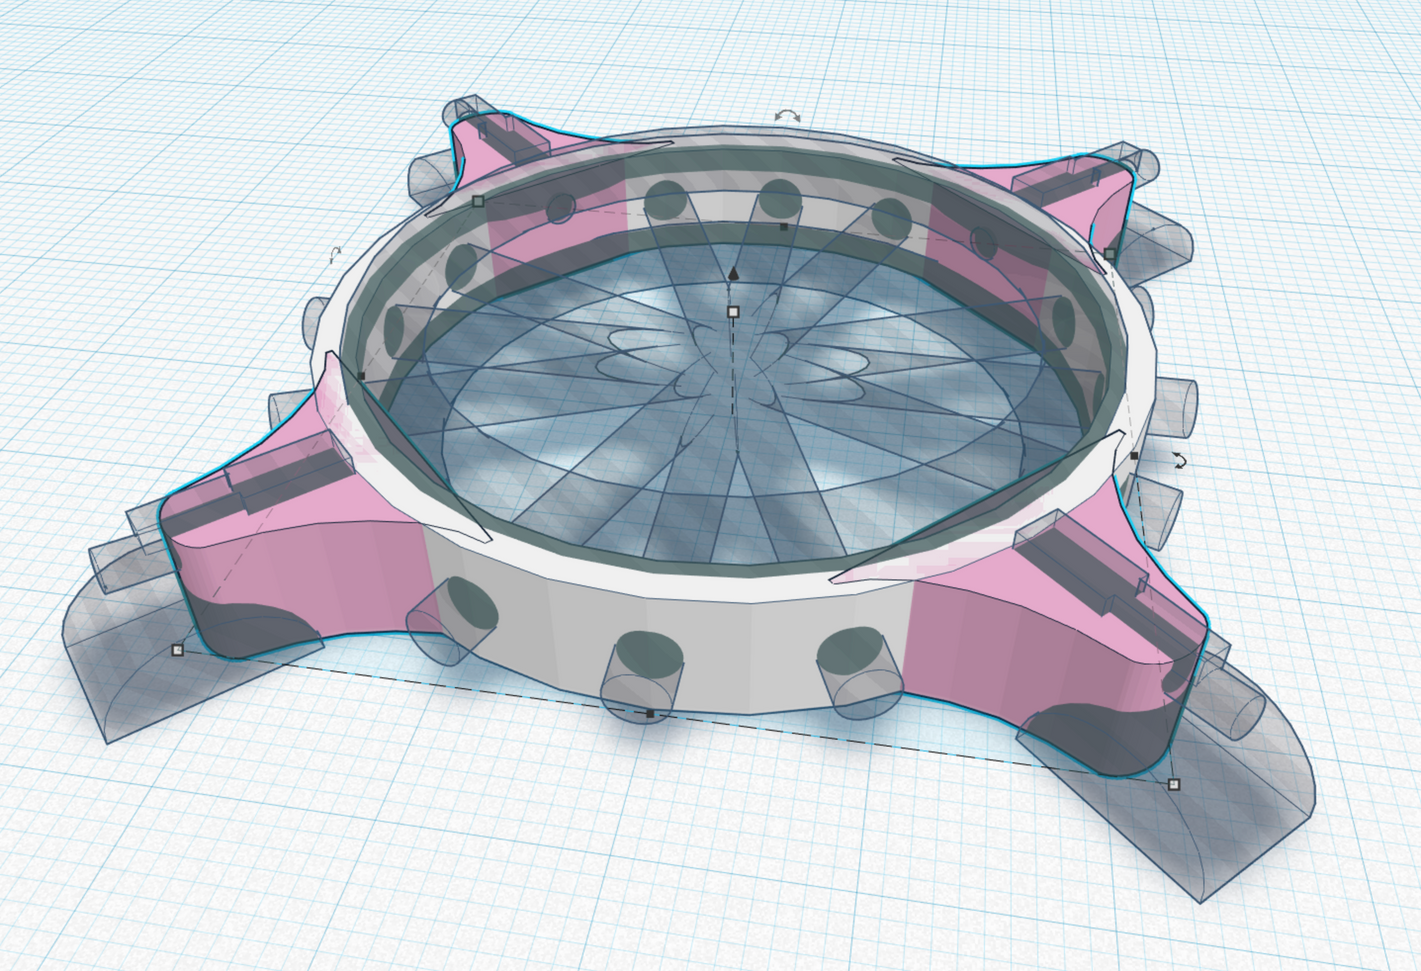 This ended up being my final design. Clunky to design in Tinkercad, but it's the level I was at and it was successful.